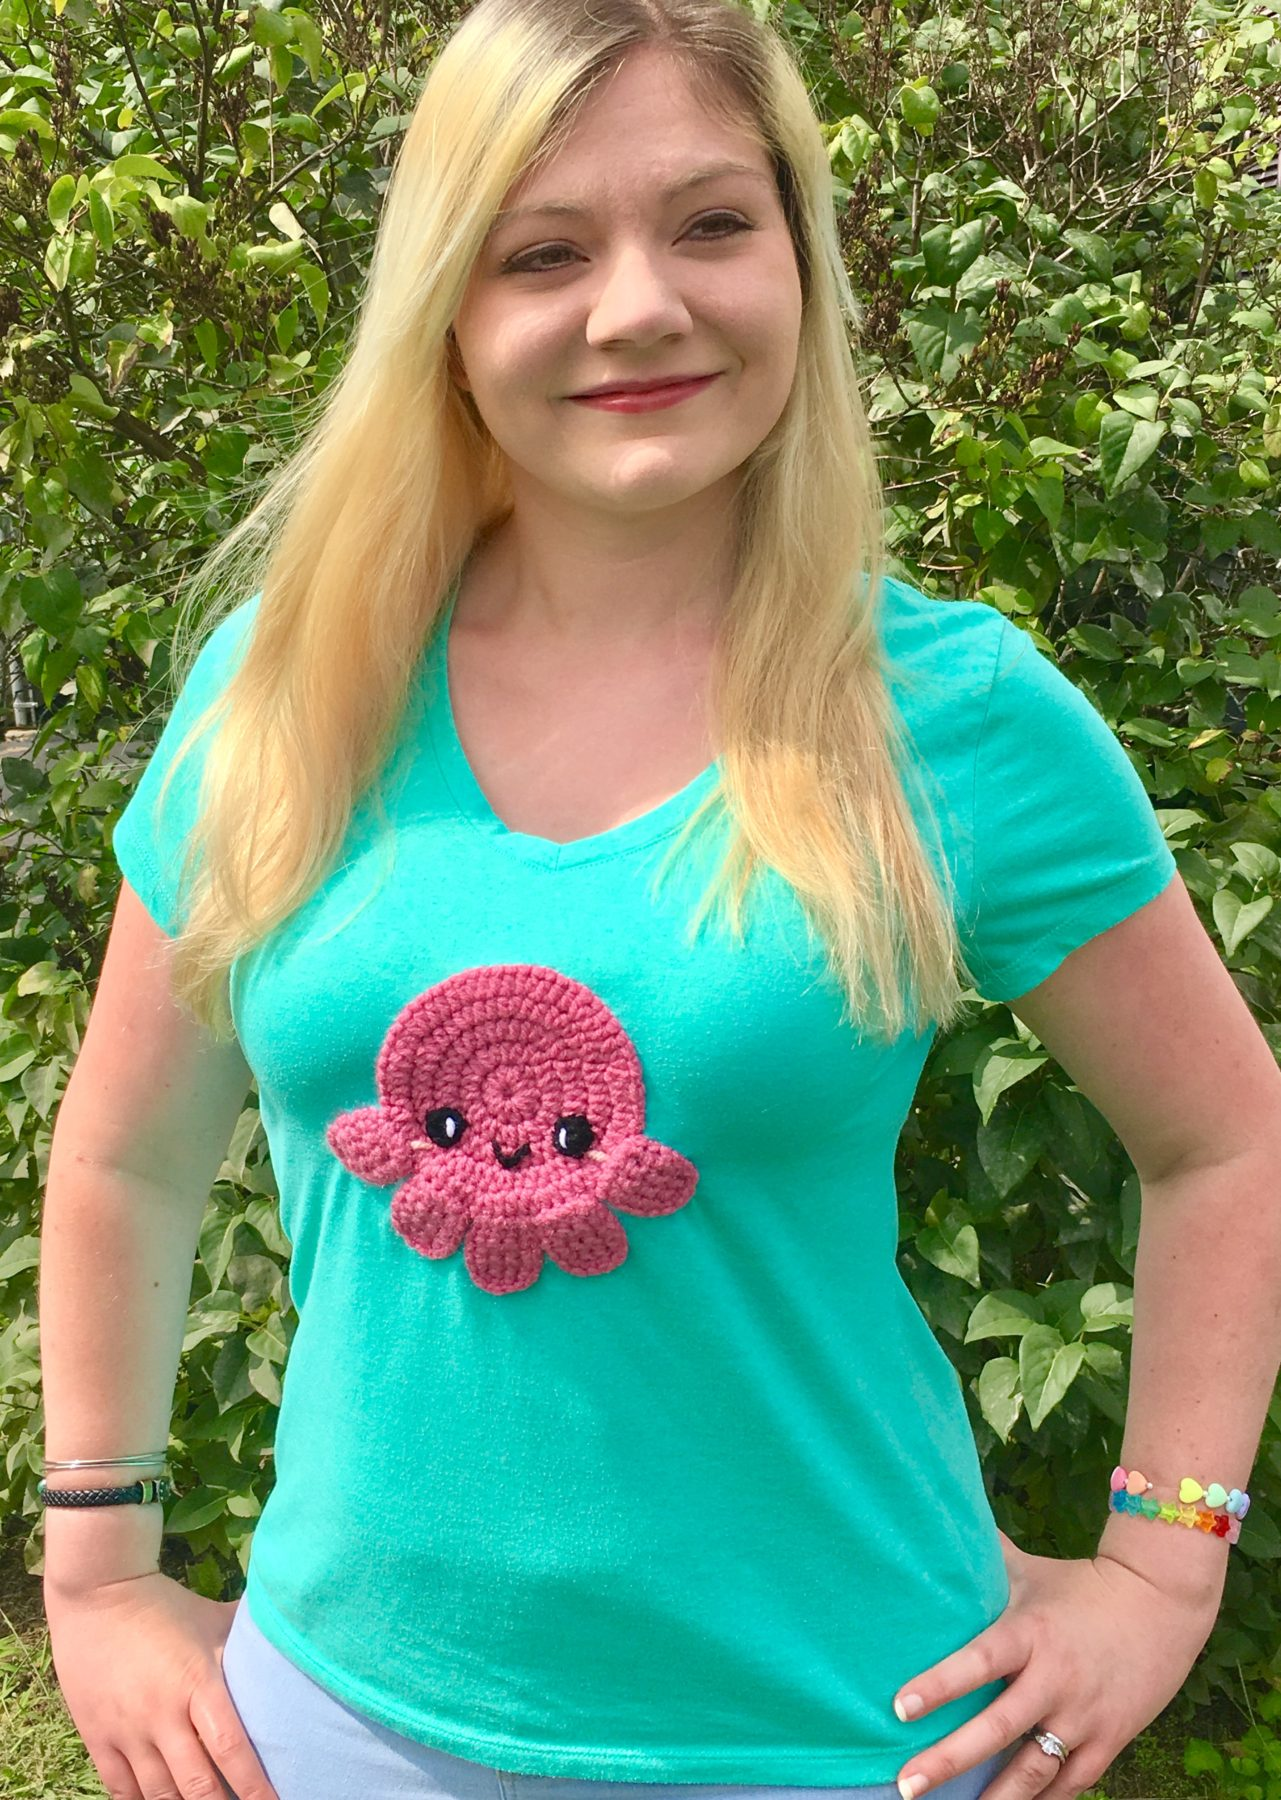 How to Attach a Crocheted Applique to a T-Shirt